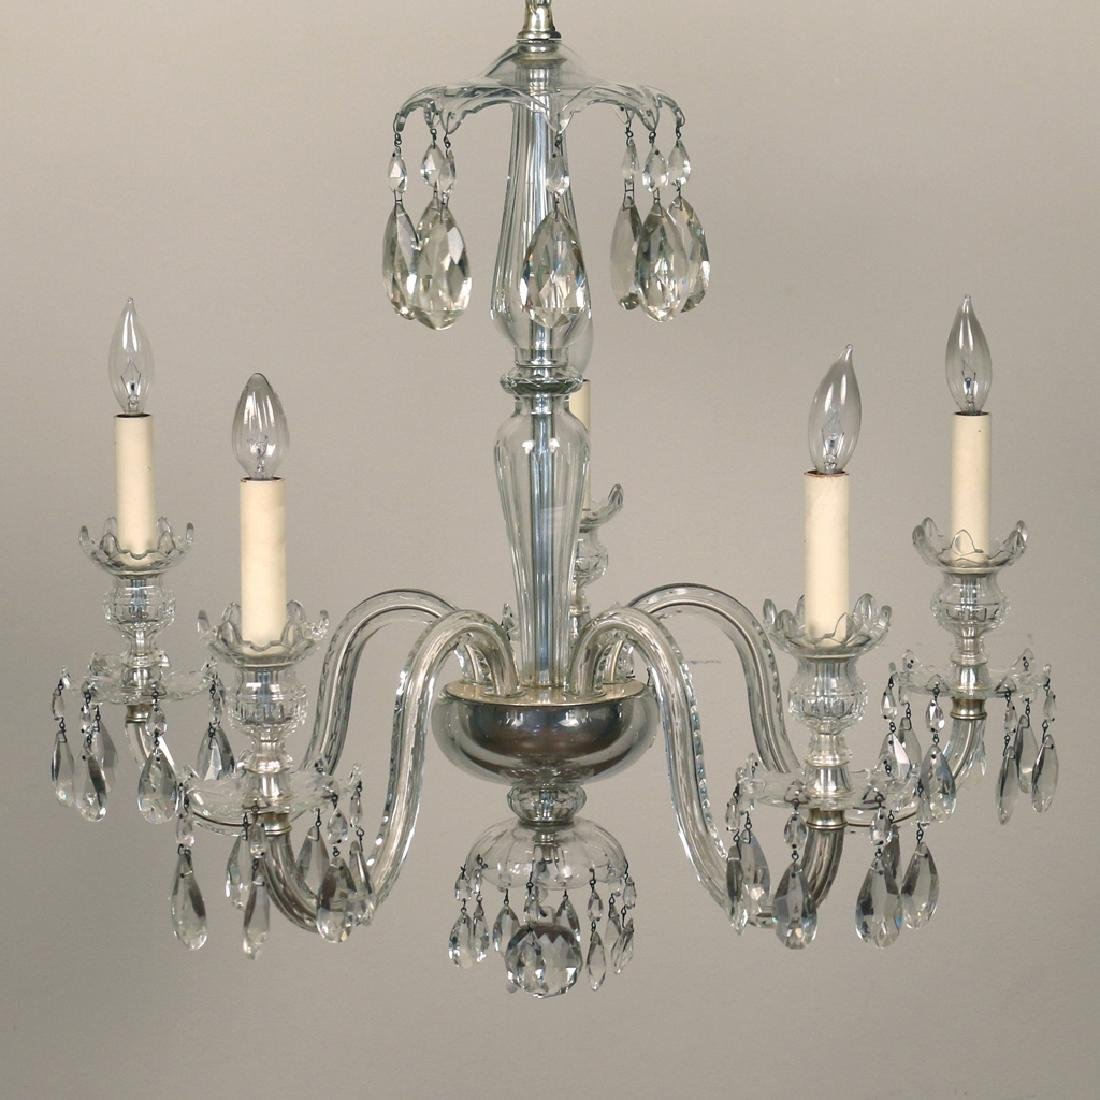 WATERFORD-TYPE CRYSTAL CHANDELIER